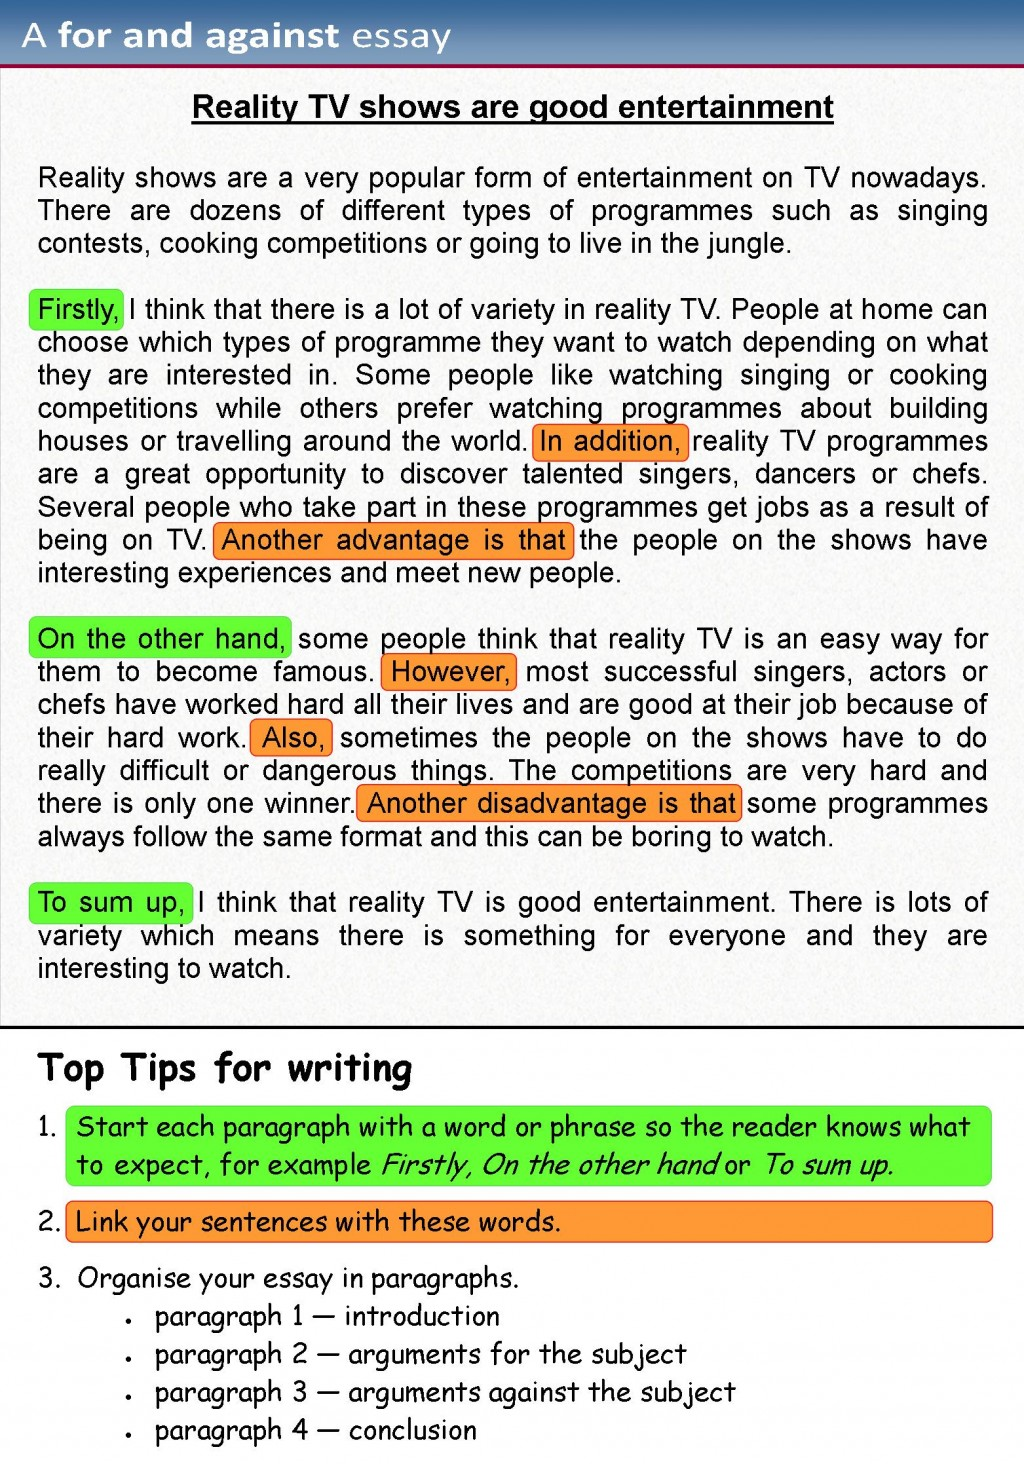 027 How Many Sentences Are In Essay For Against 1 Best A 5 Paragraph Short Large